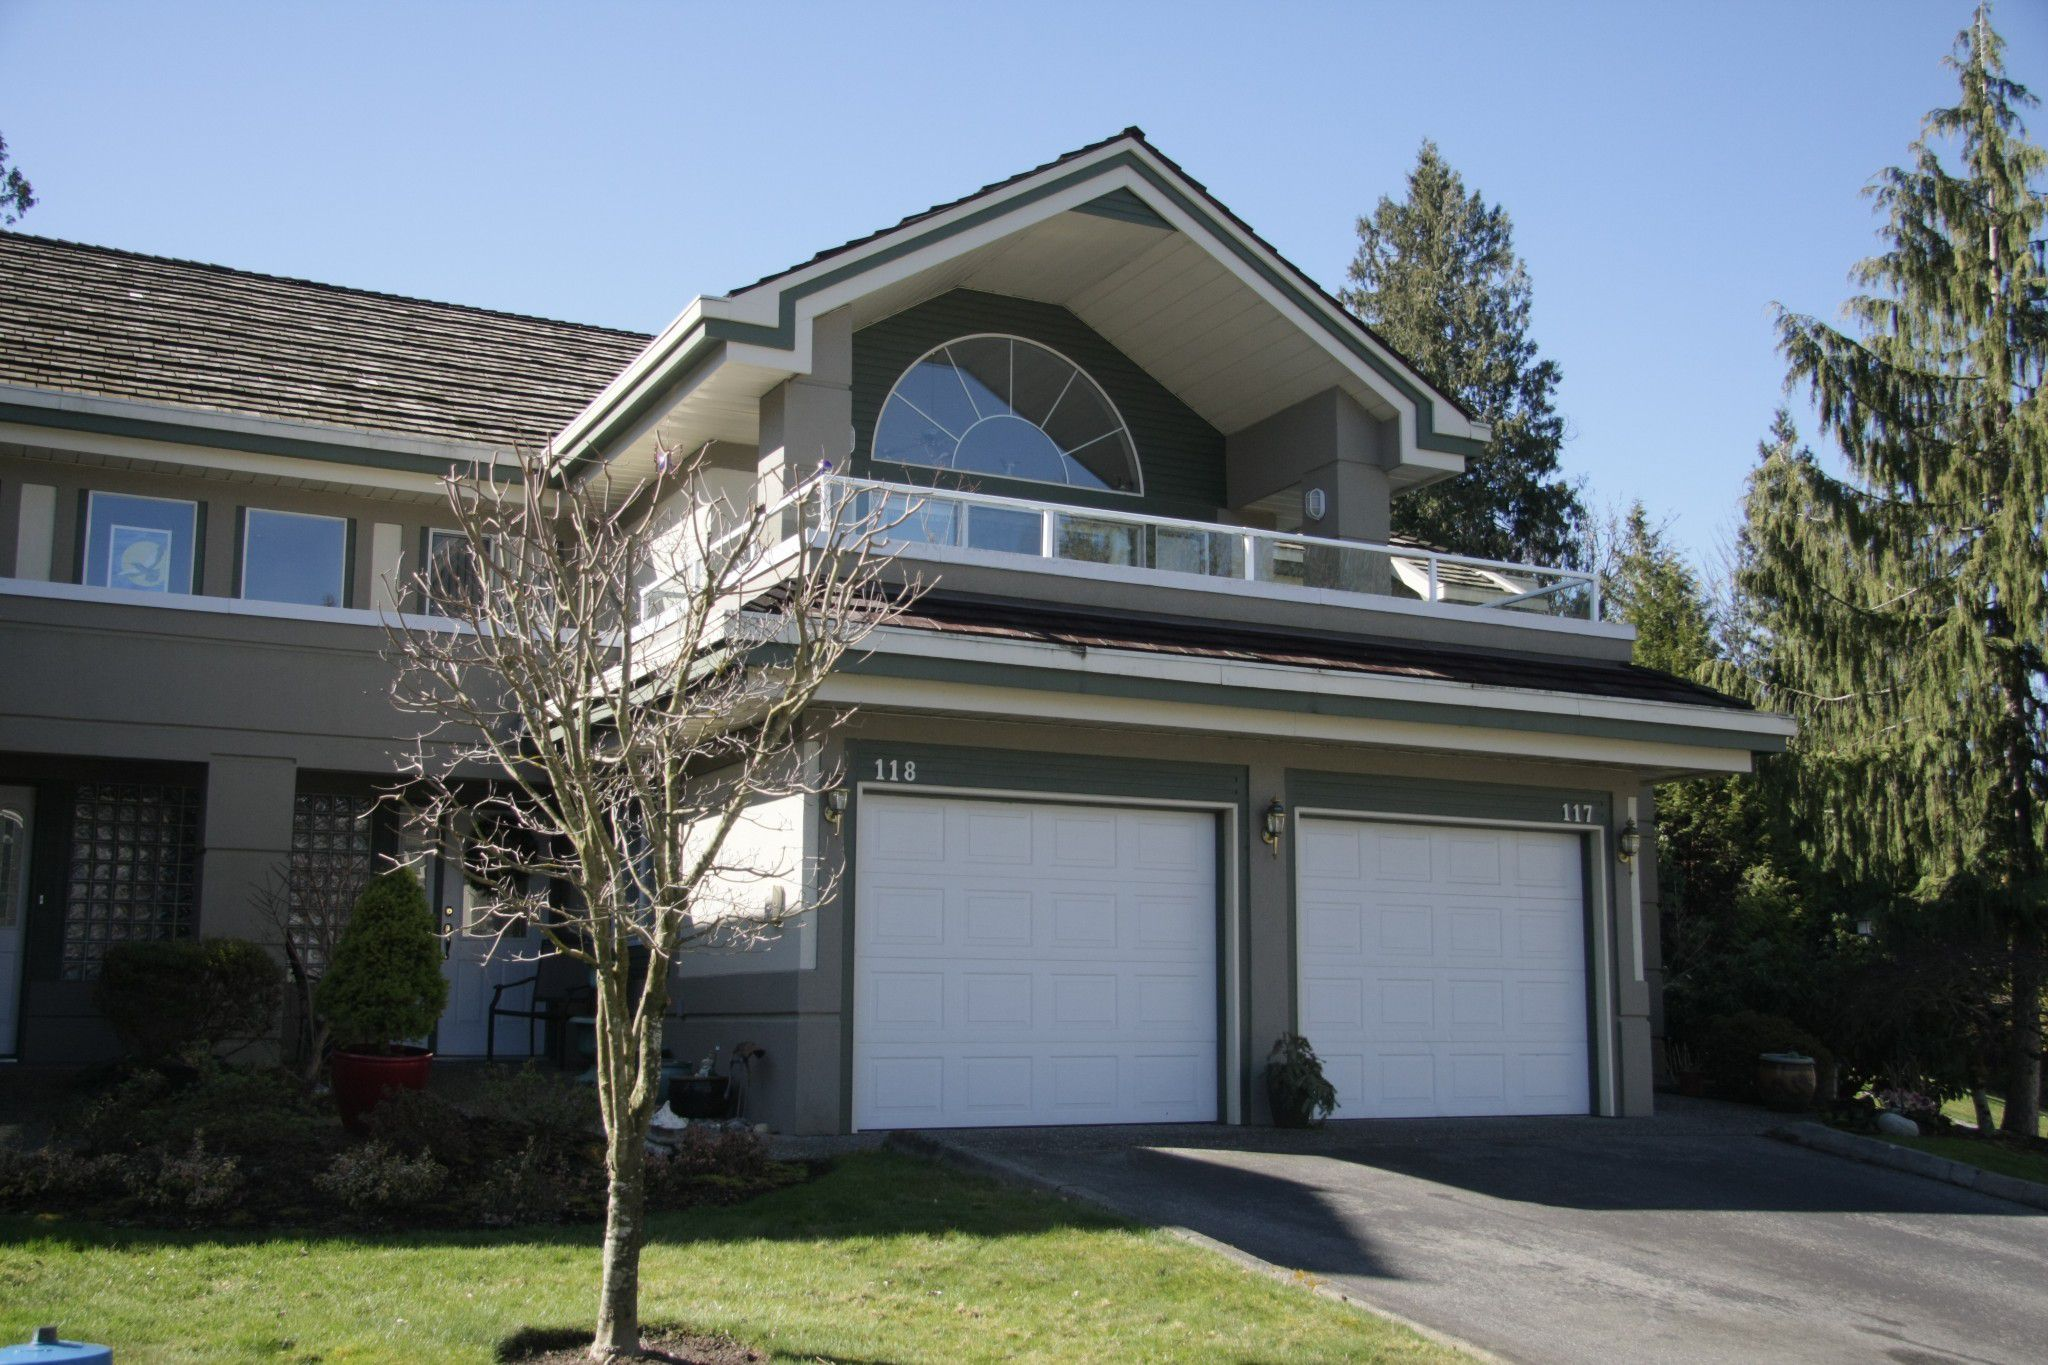 Main Photo: 118 4001 Old Clayburn Road in Abbotsford: Abbotsford East Townhouse for sale : MLS®# R2248758